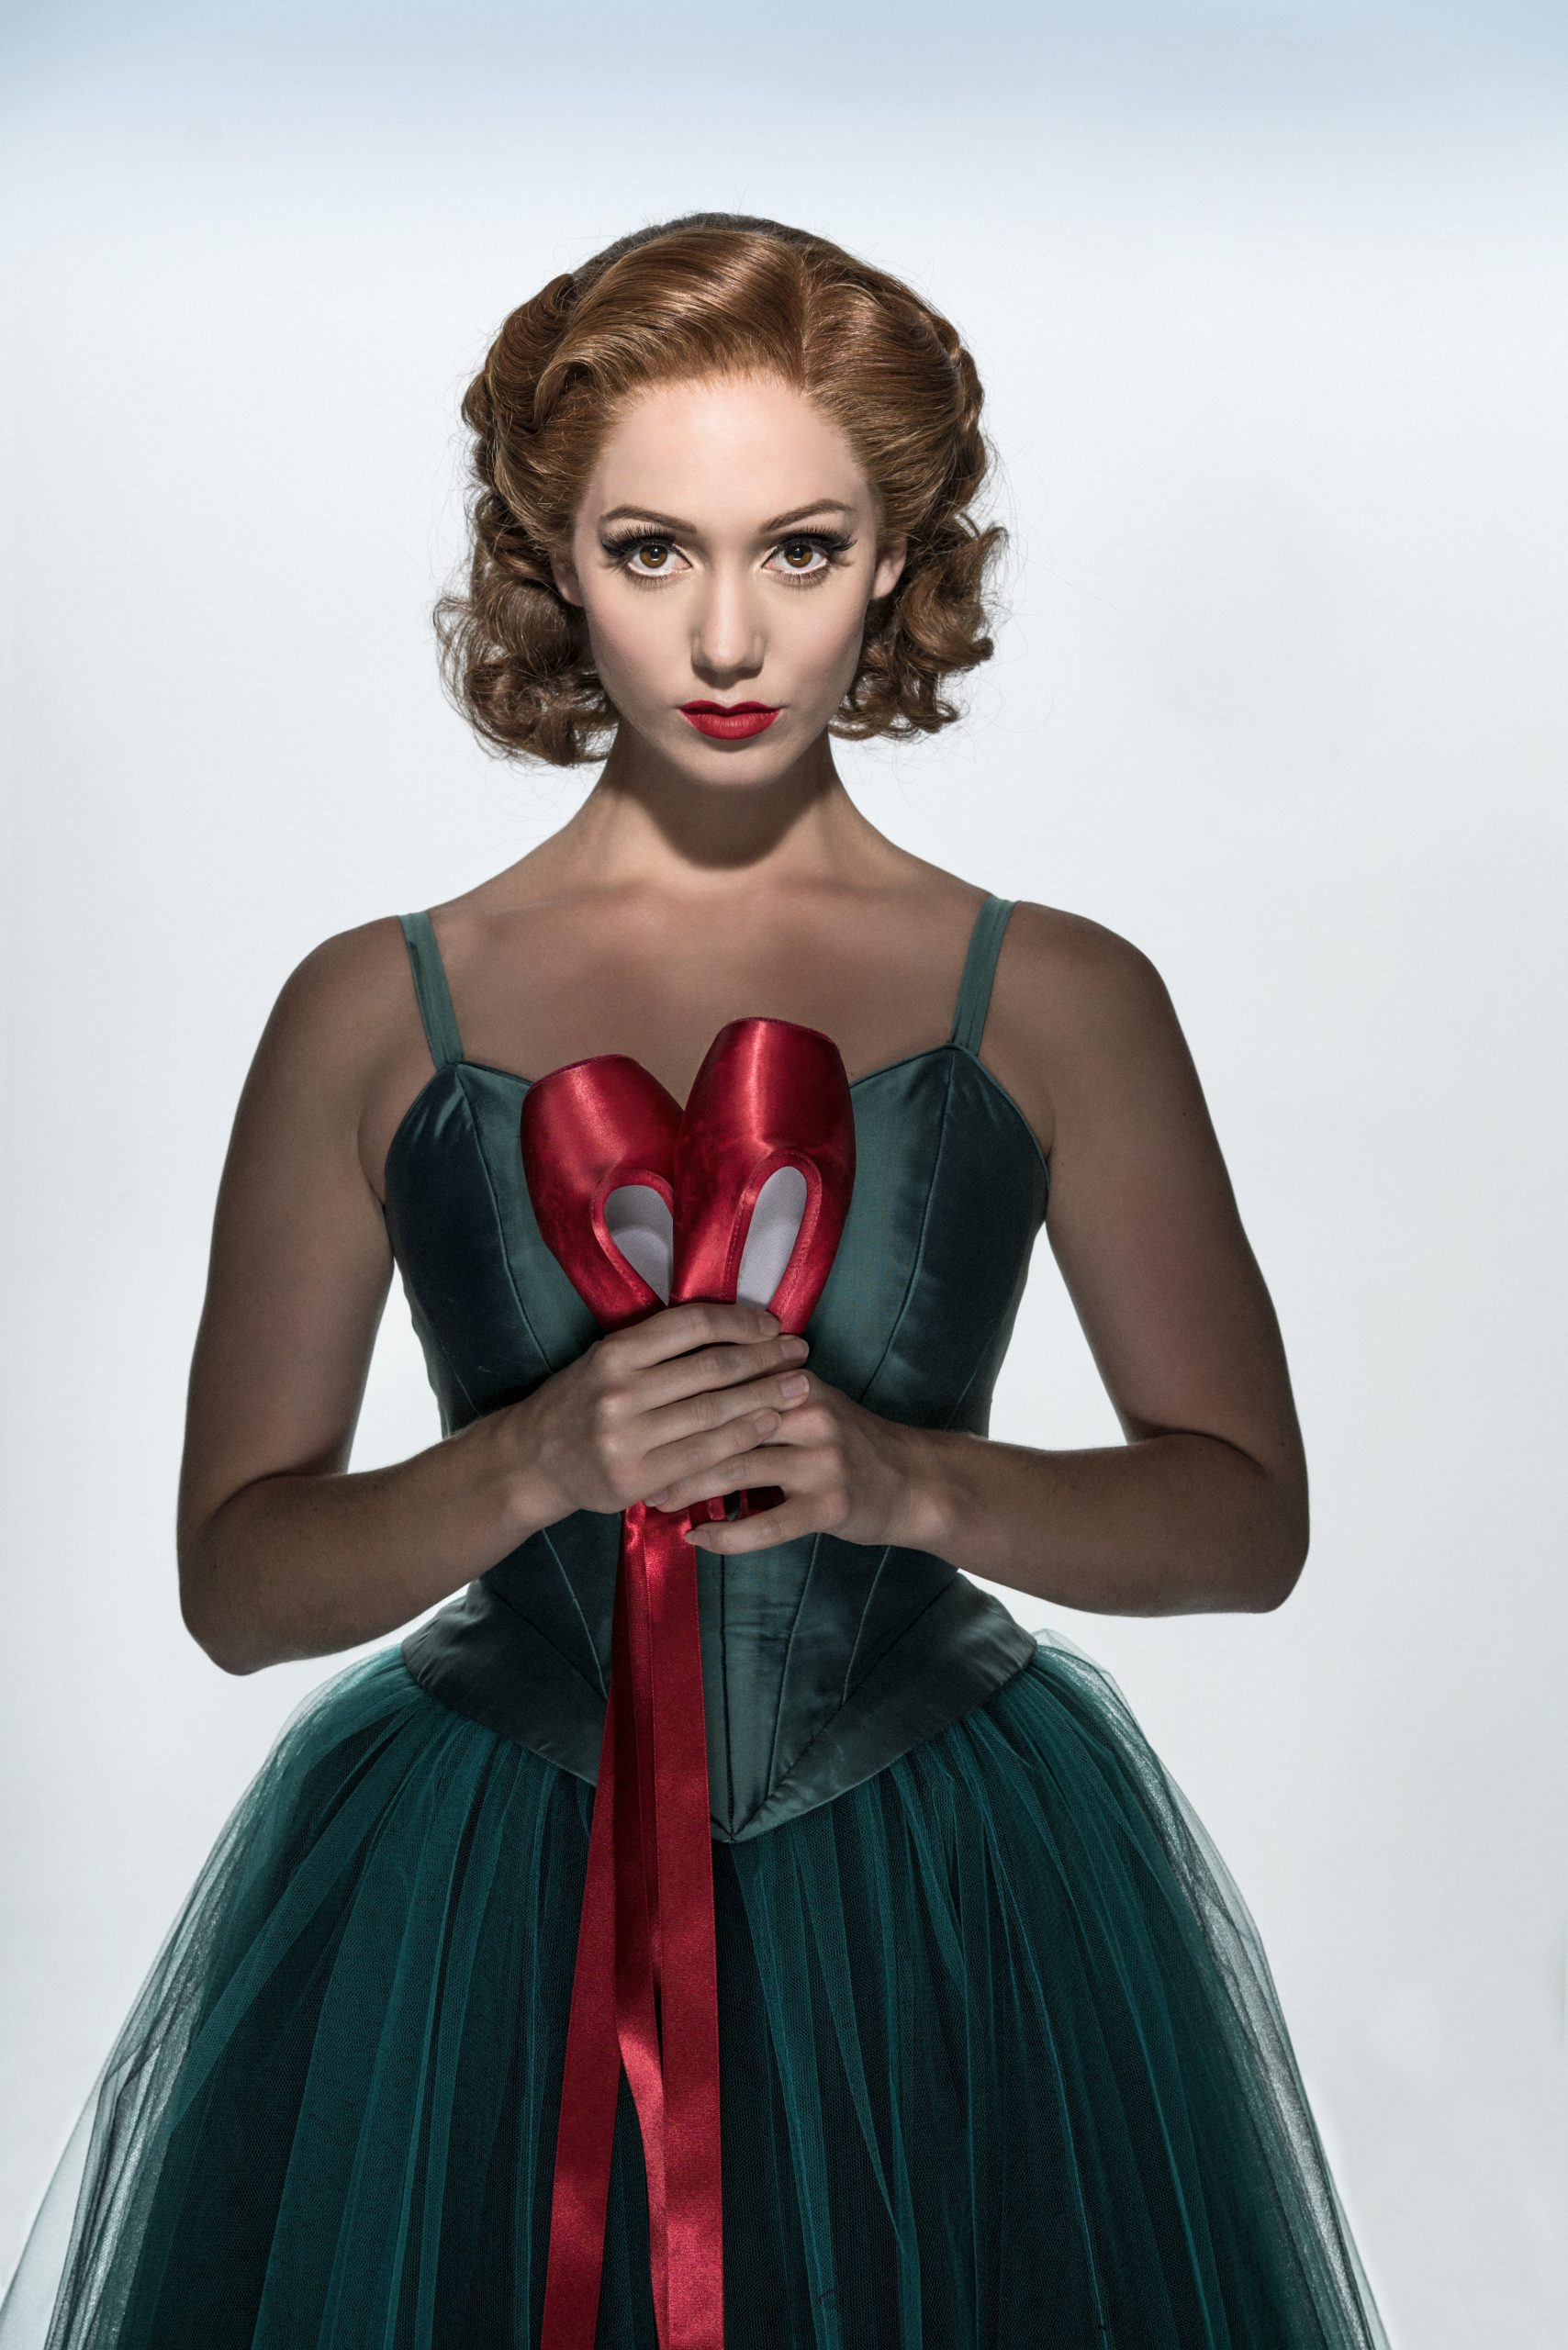 Matthew Bourne's production of The Red Shoes. Ashley Shaw as Victoria Page.